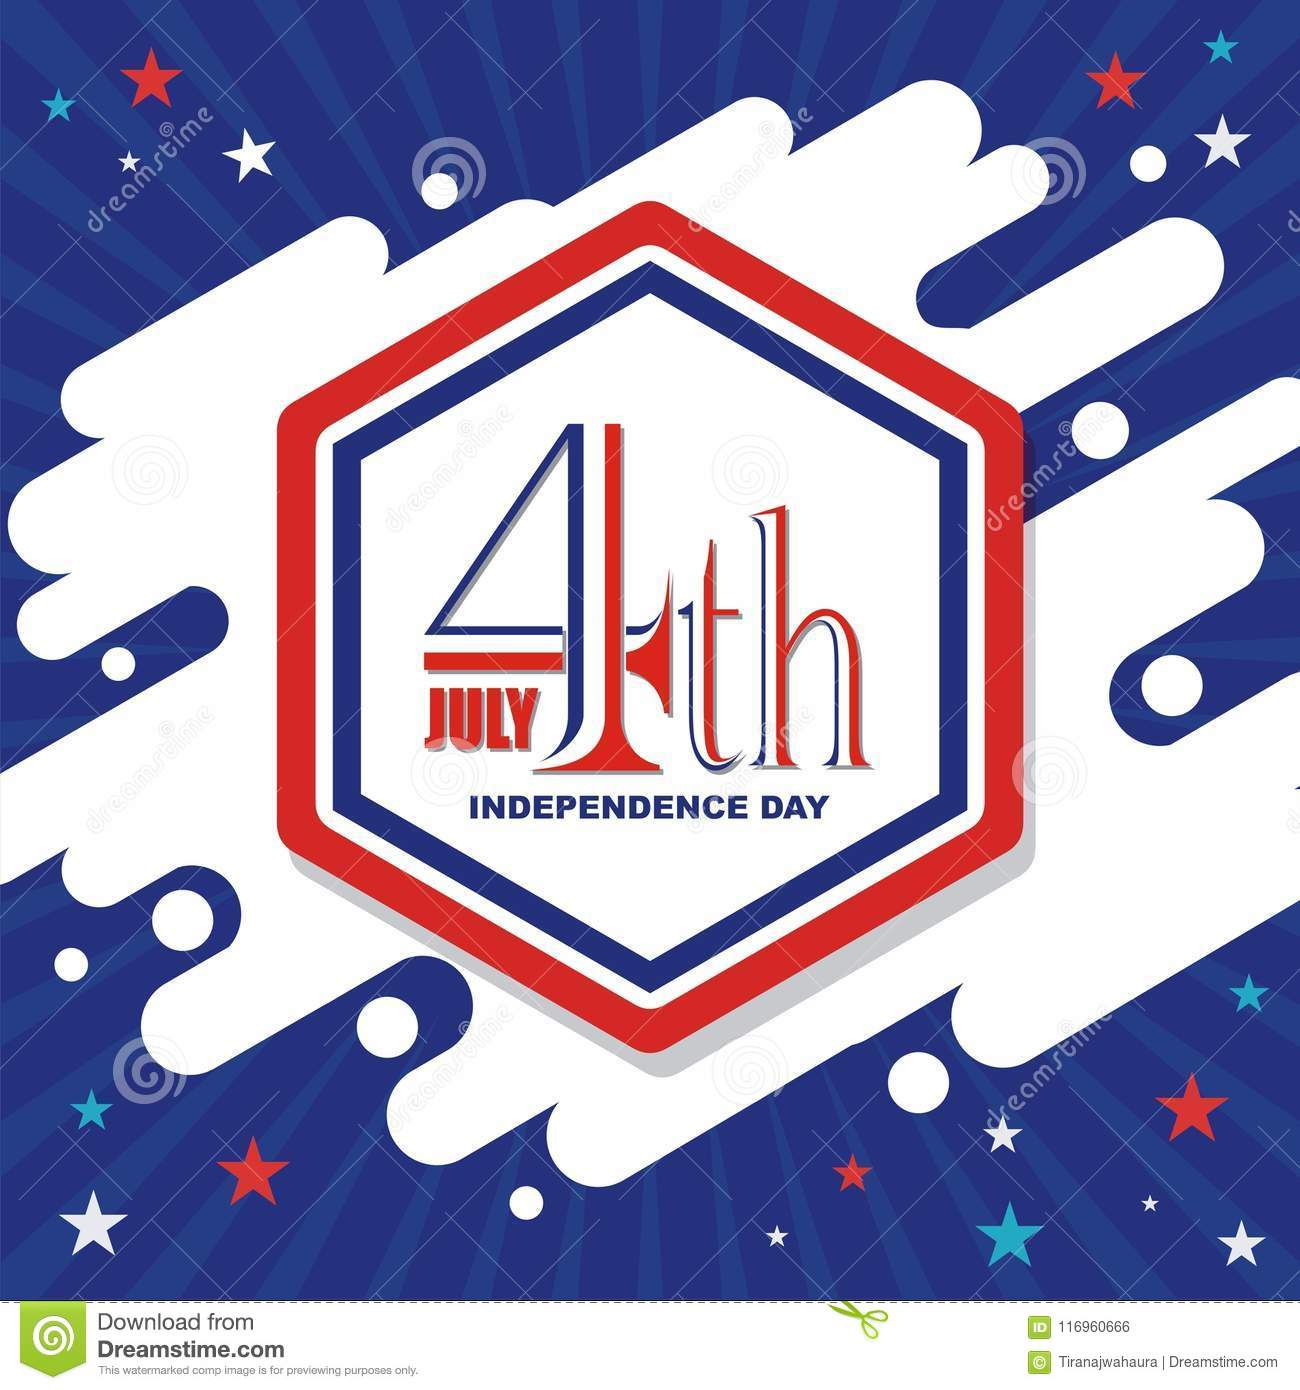 Happy 4th of July, USA Independence Day Vector Design